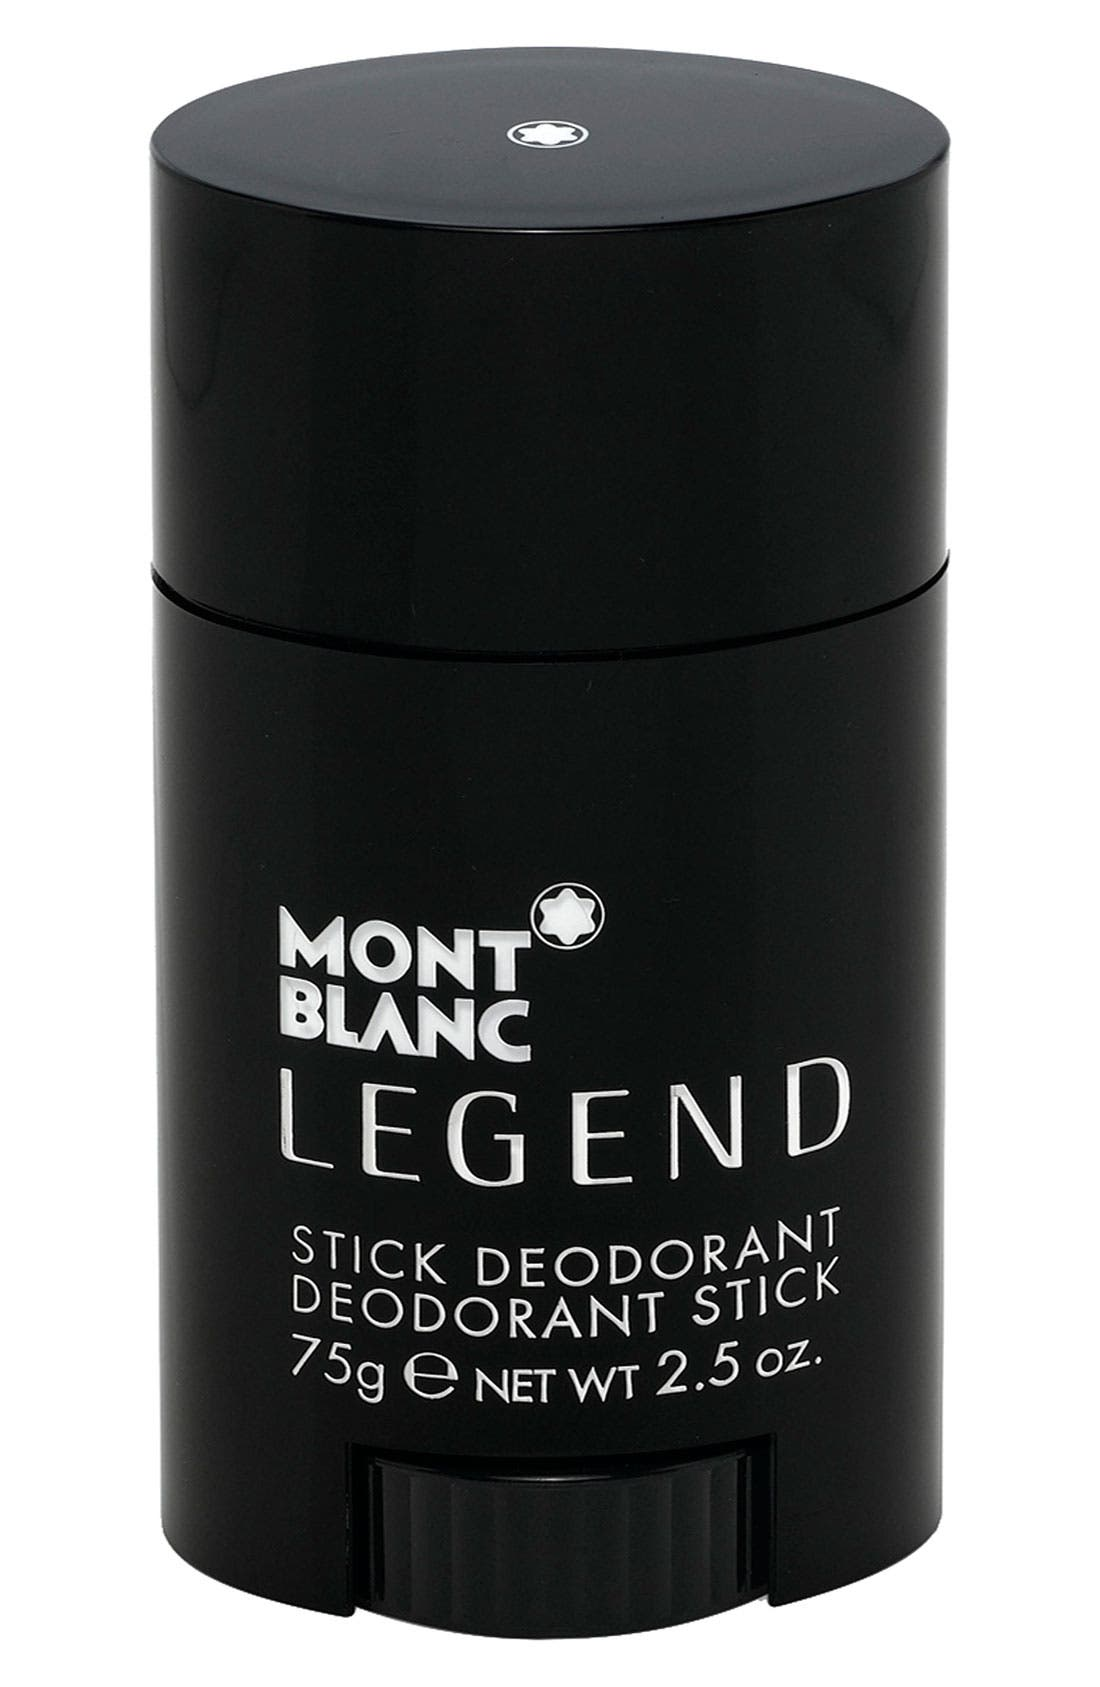 MONTBLANC, 'Legend' Deodorant Stick, Main thumbnail 1, color, 000